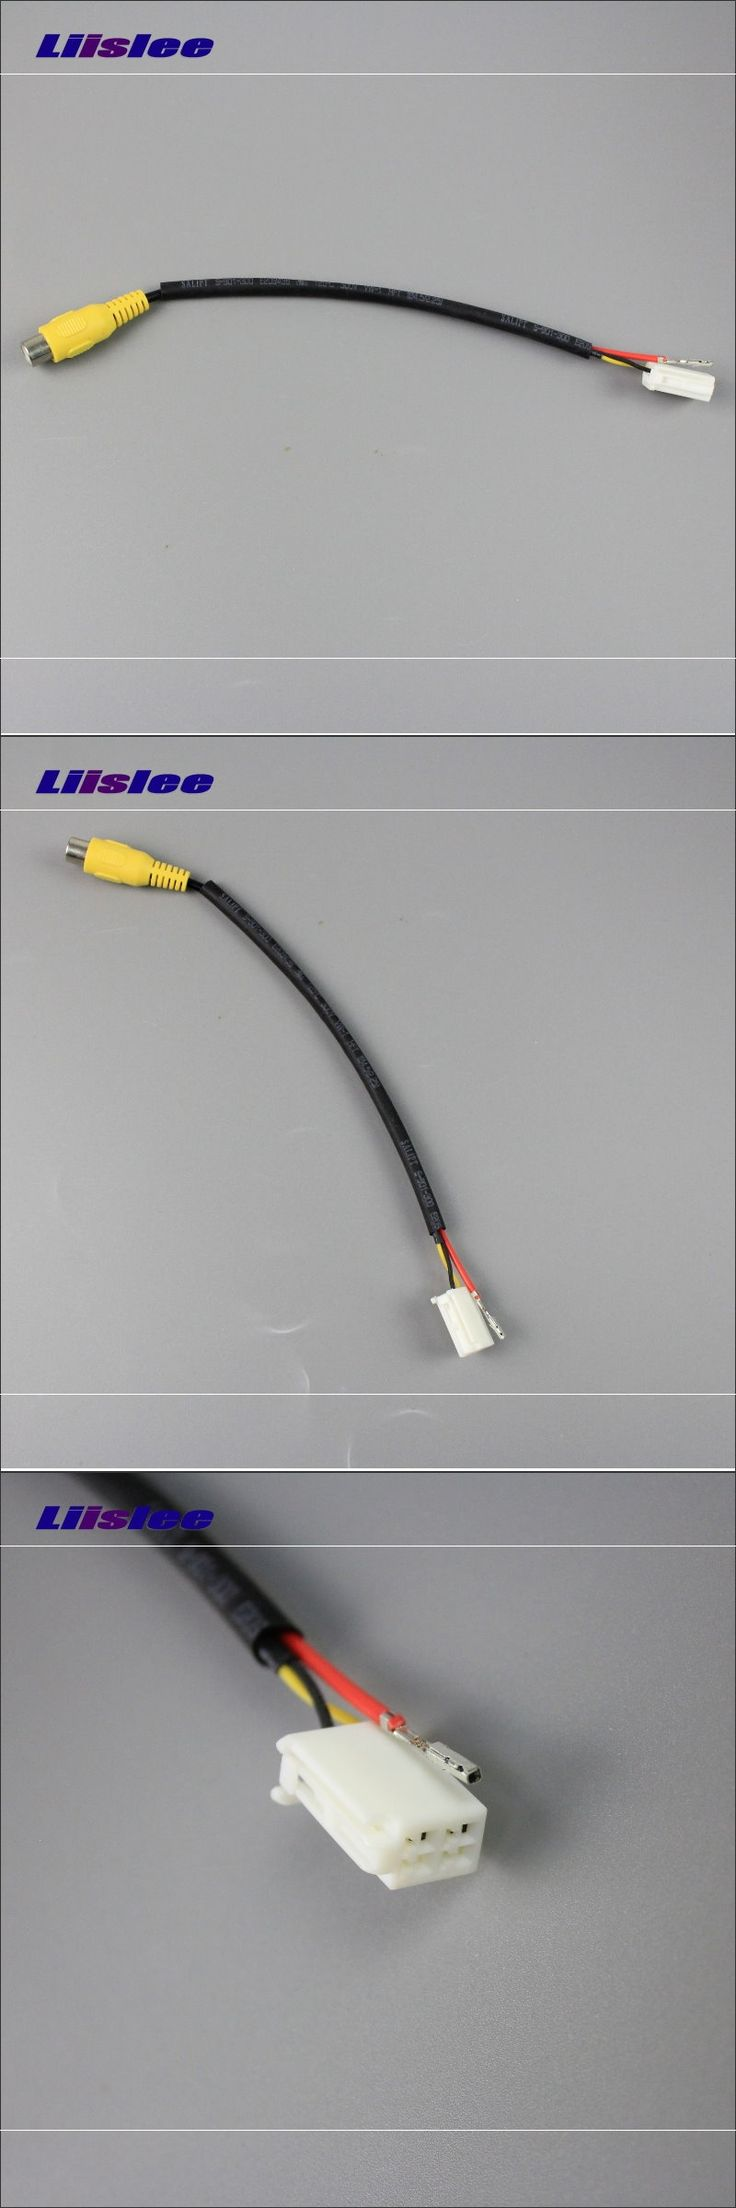 Original Display Input RCA Wire For Mazda 6 Mazda6 / Mazda Atenza 2012~2014 Rear Back Camera Switch Adapter Connector Cable